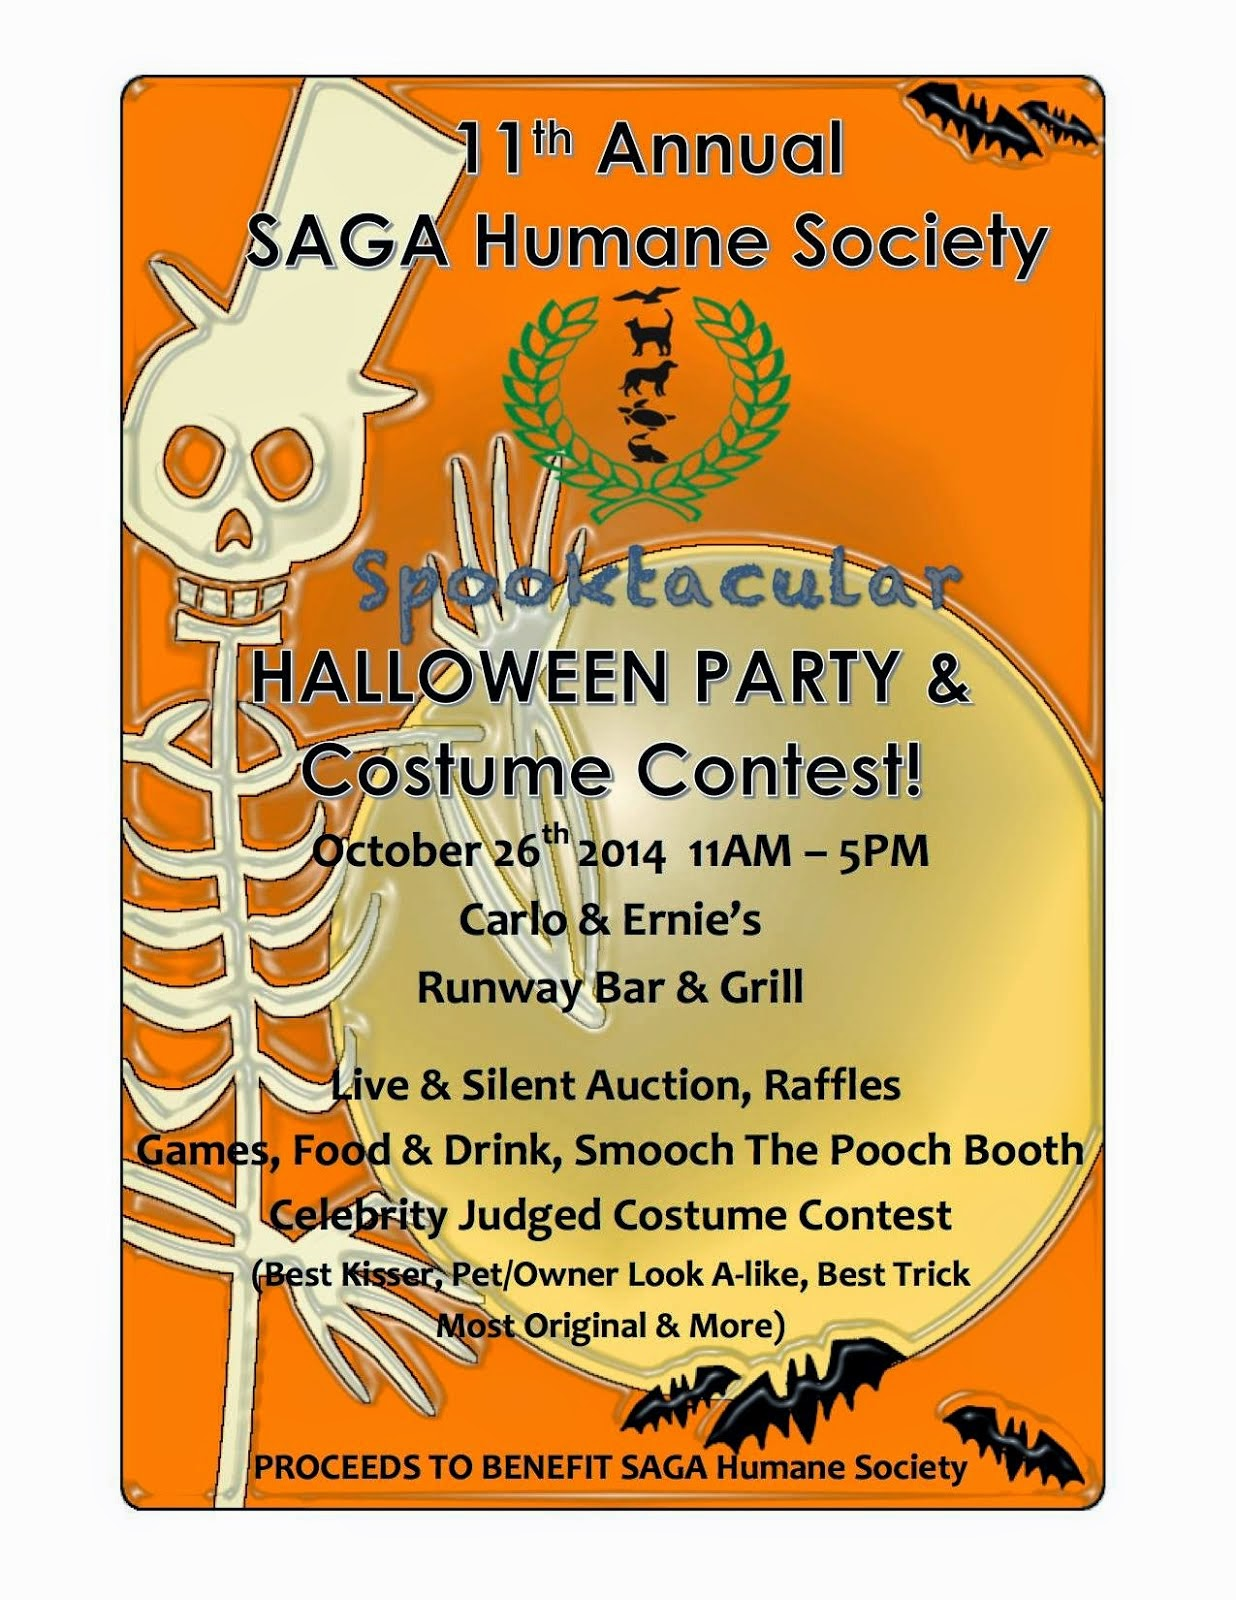 11th Annual Saga Humane Society